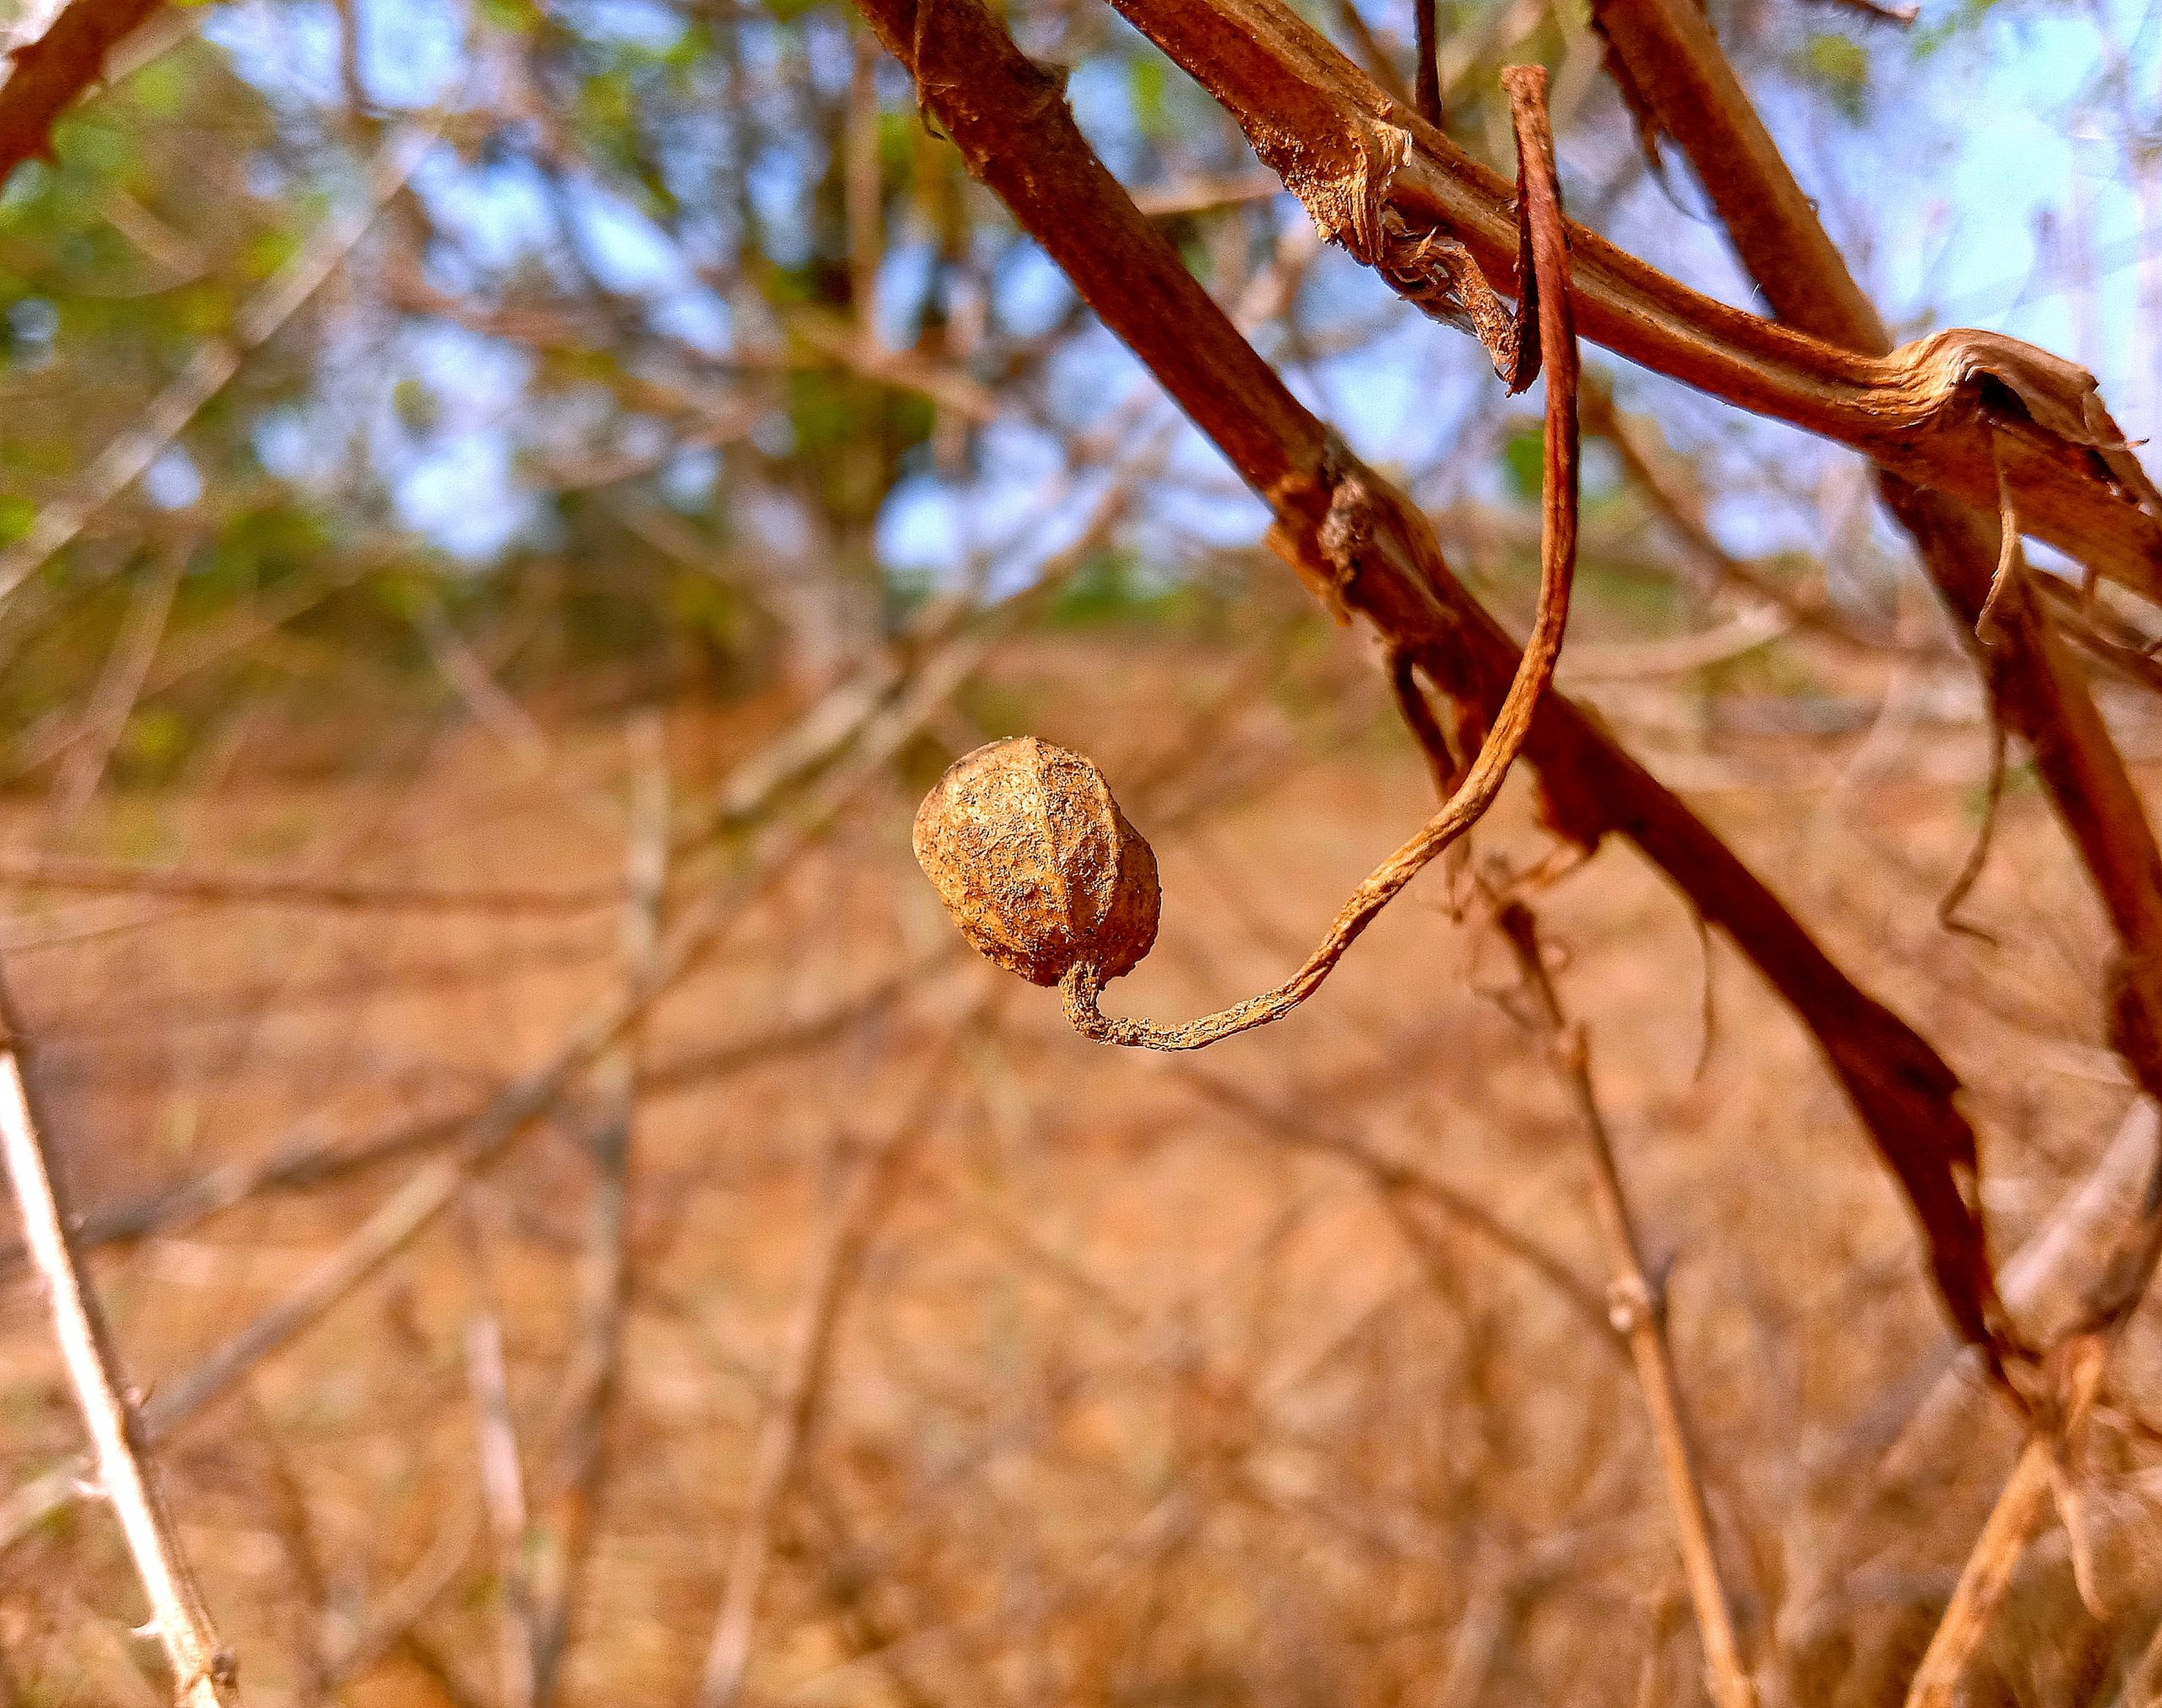 Dry flower buds on the plant